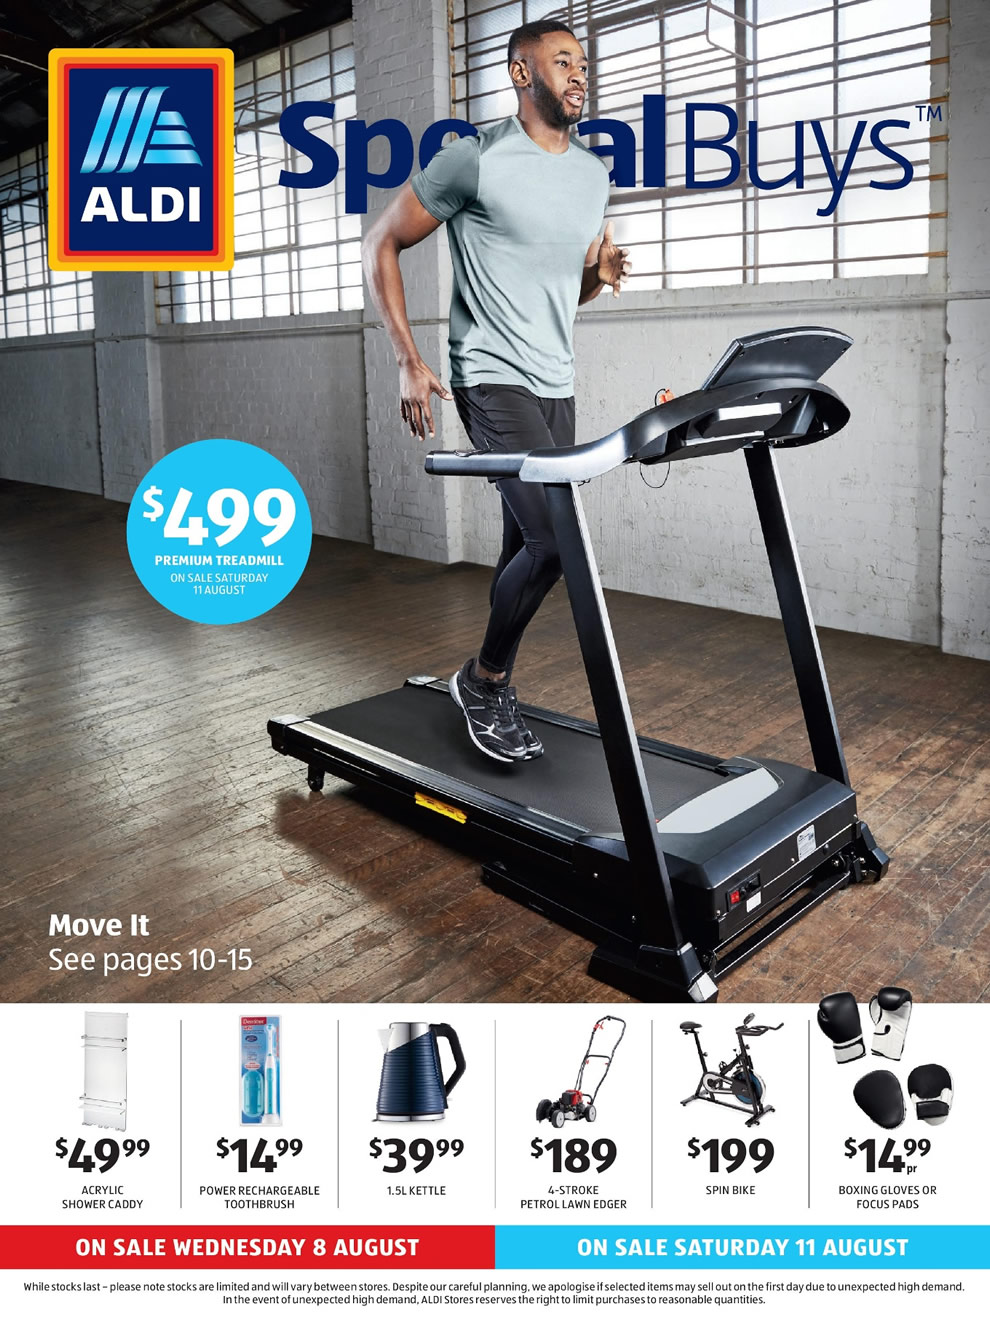 ALDI Catalogue 8th August - 14th August 2018 - Page 1